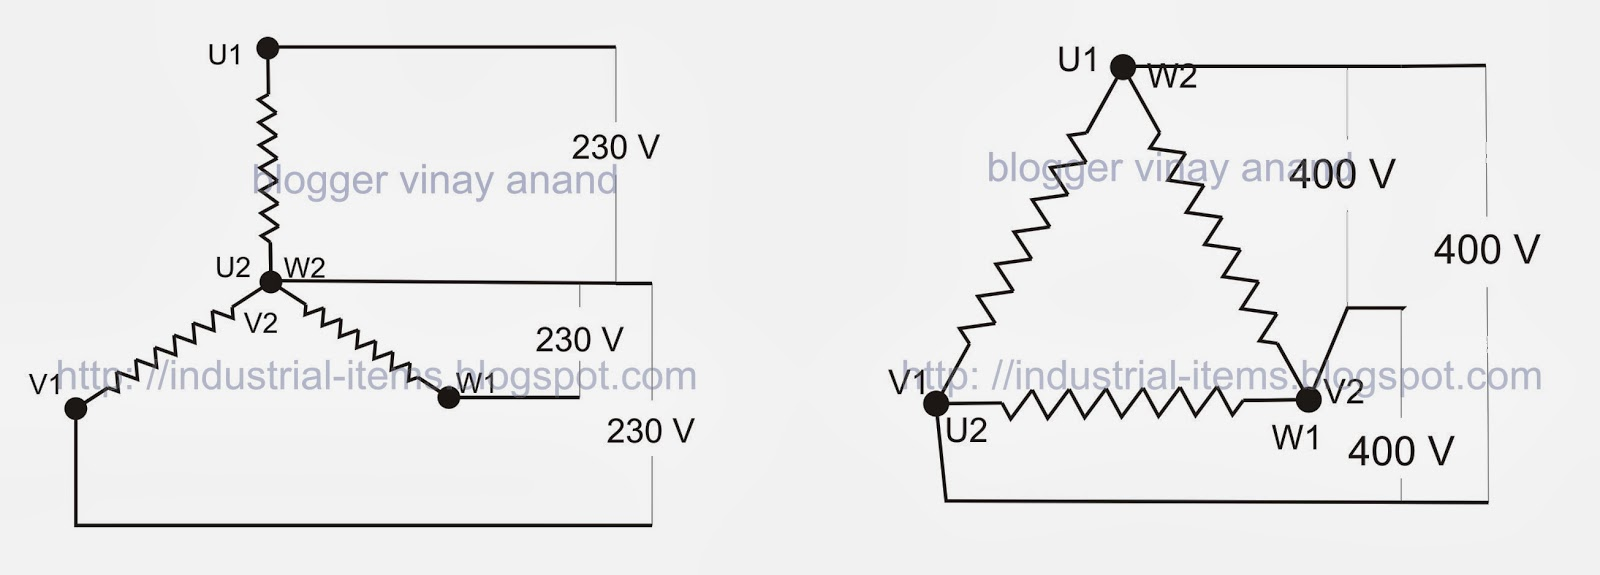 delta wiring connection car wiring diagrams explained u2022 rh ethermag co delta voltage connections star delta wiring connection